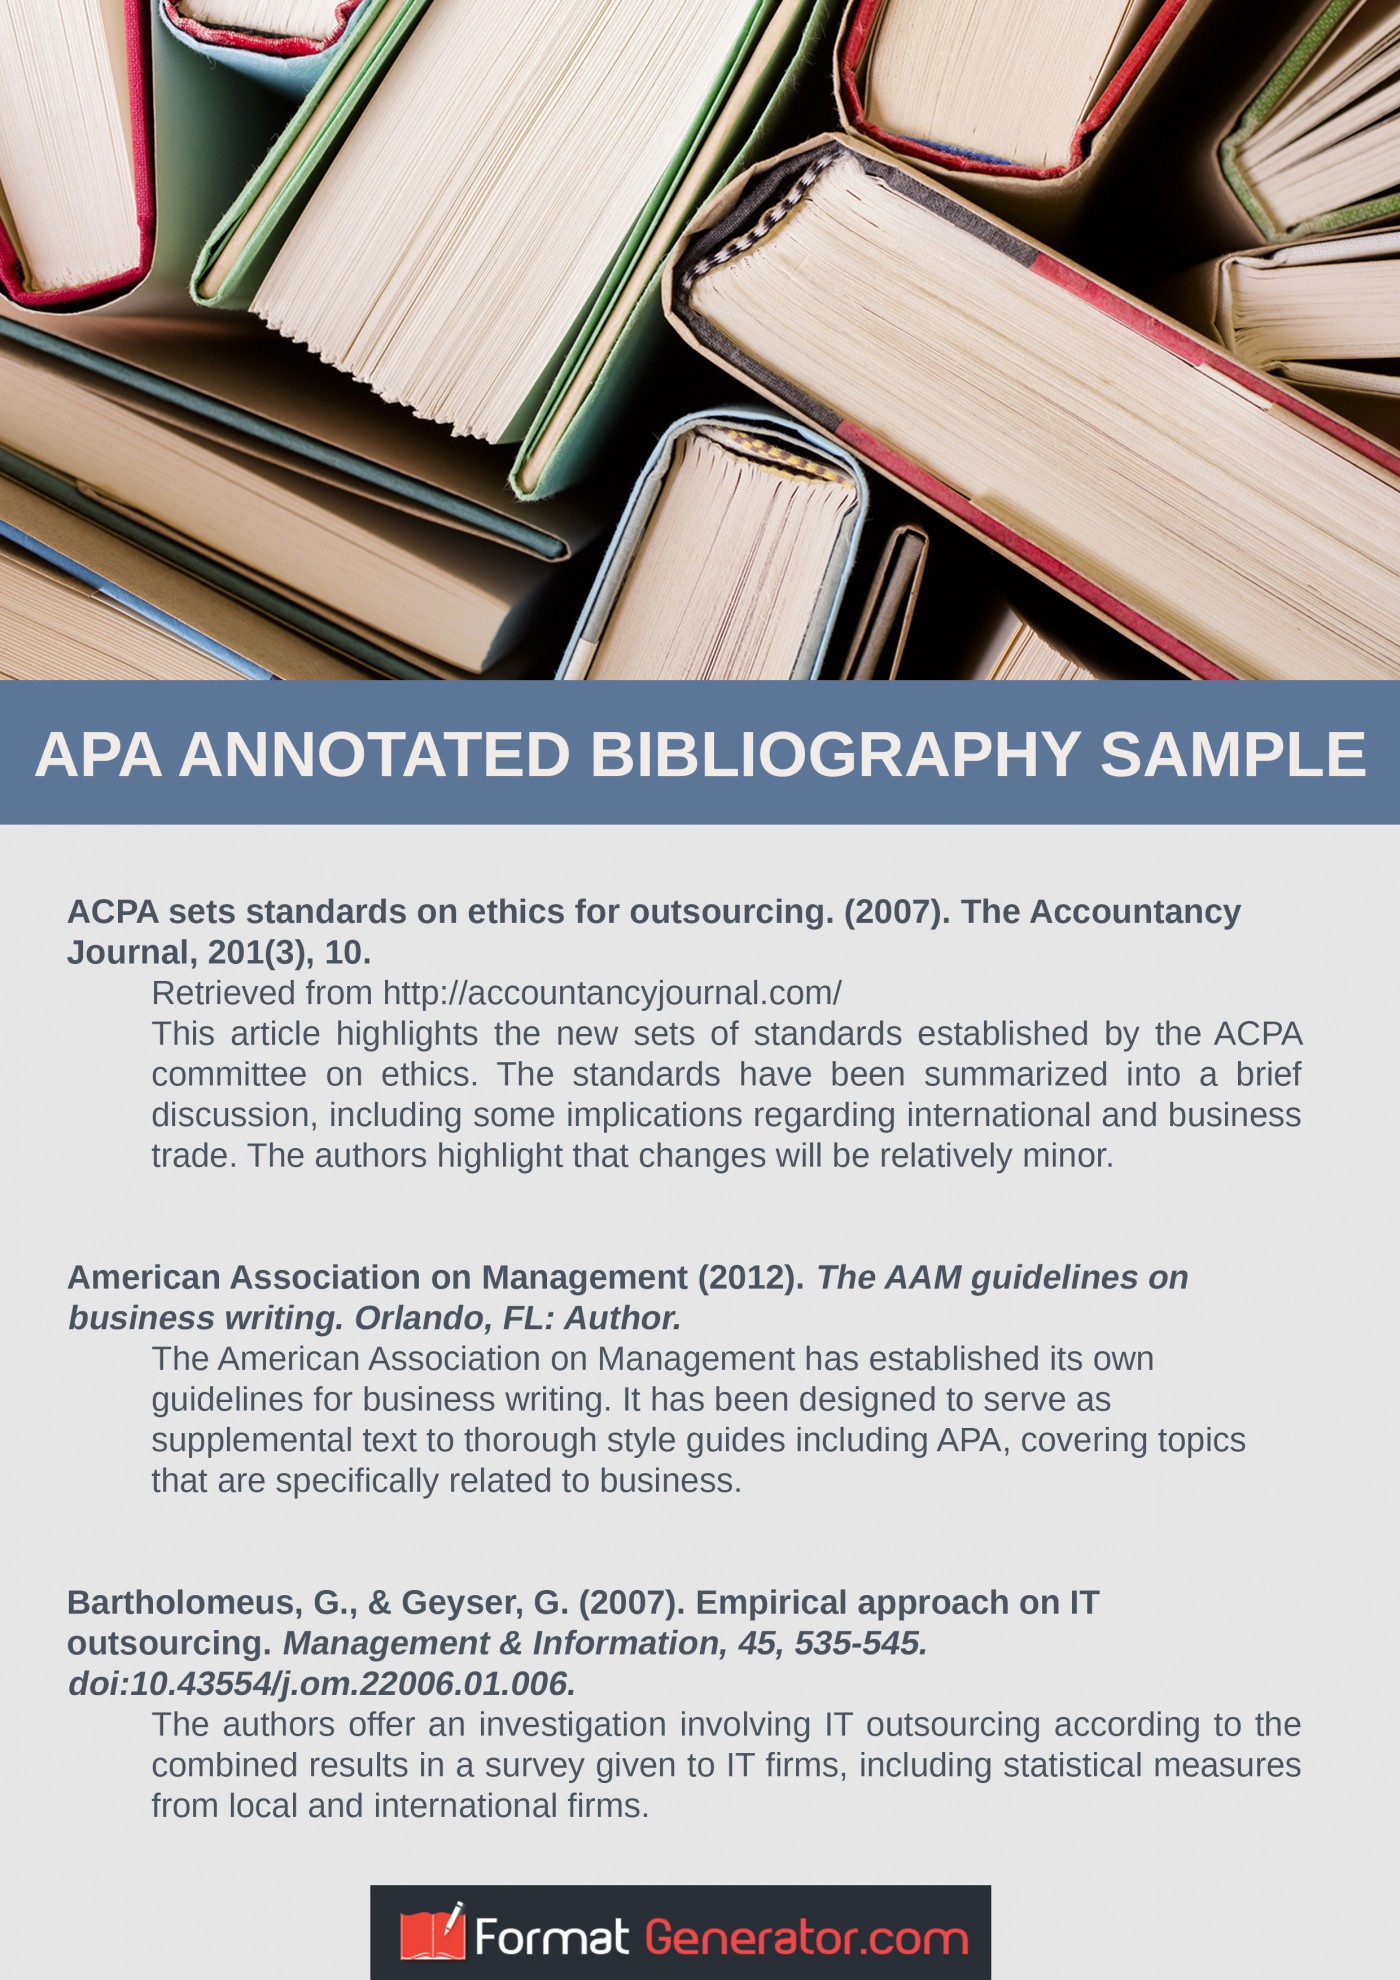 023 Free Online Research Paper Generator Apa Annotated Bibliography Outstanding Outline 1400